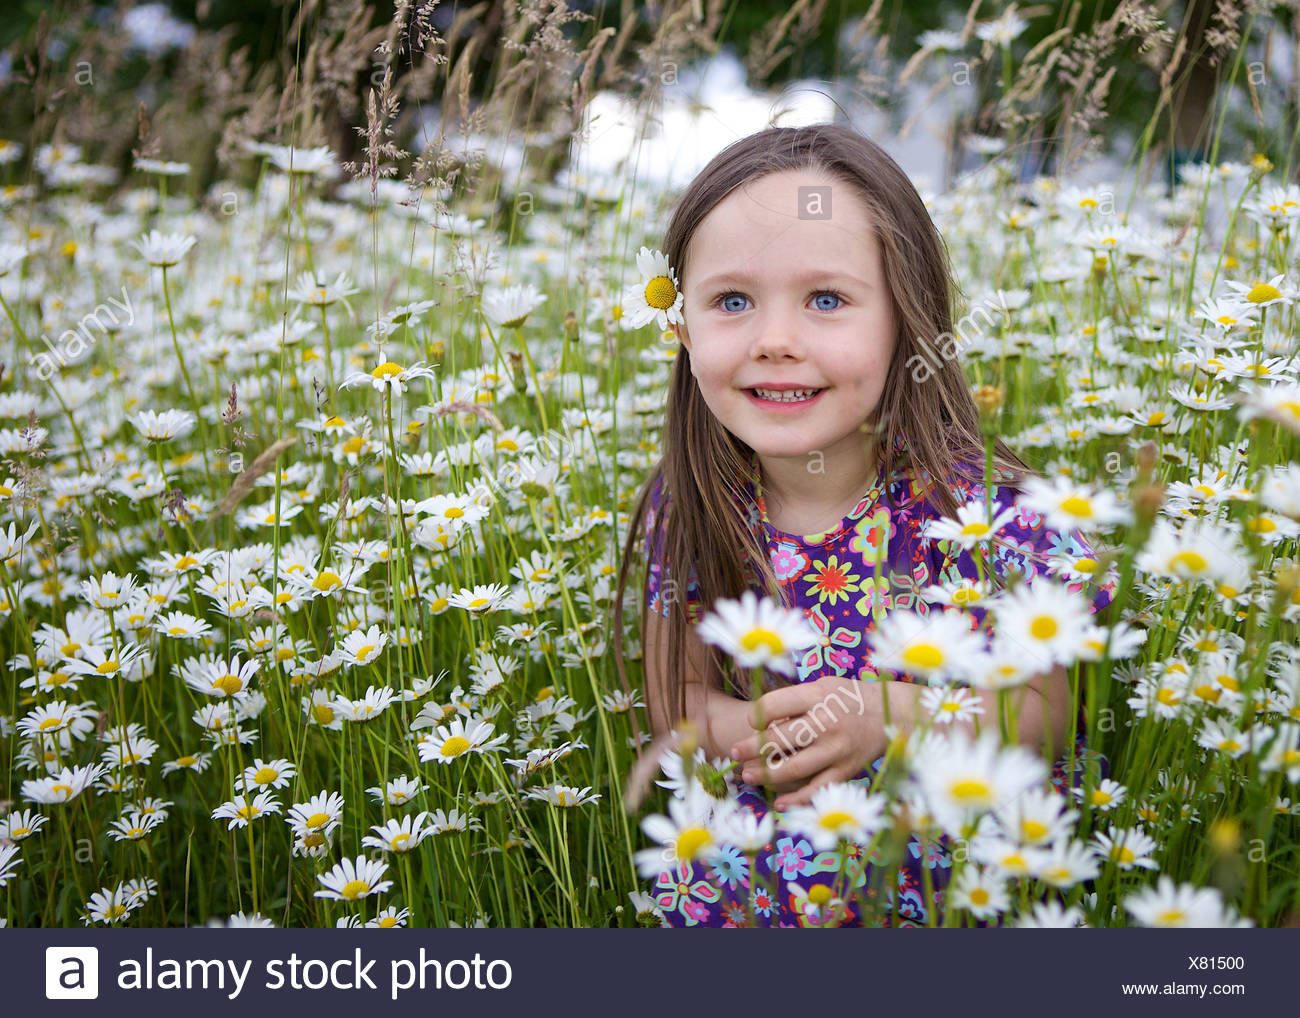 Little girl, three years, sitting in a flower meadow with many daisies, Rosenheim, Bavaria Stock Photo